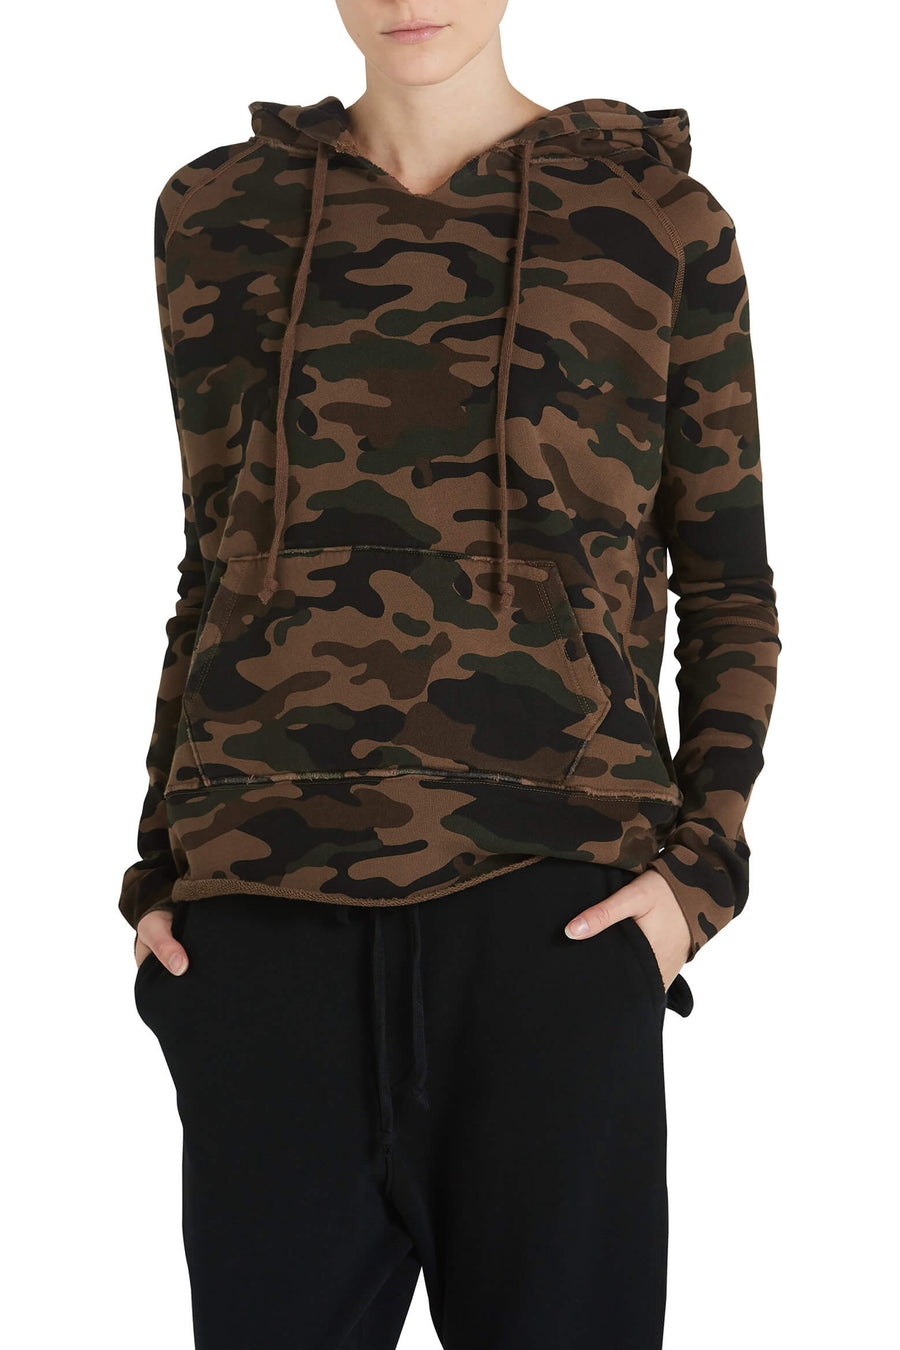 Nili Lotan Janie Hoodie in Brown Camouflage from The New Trend